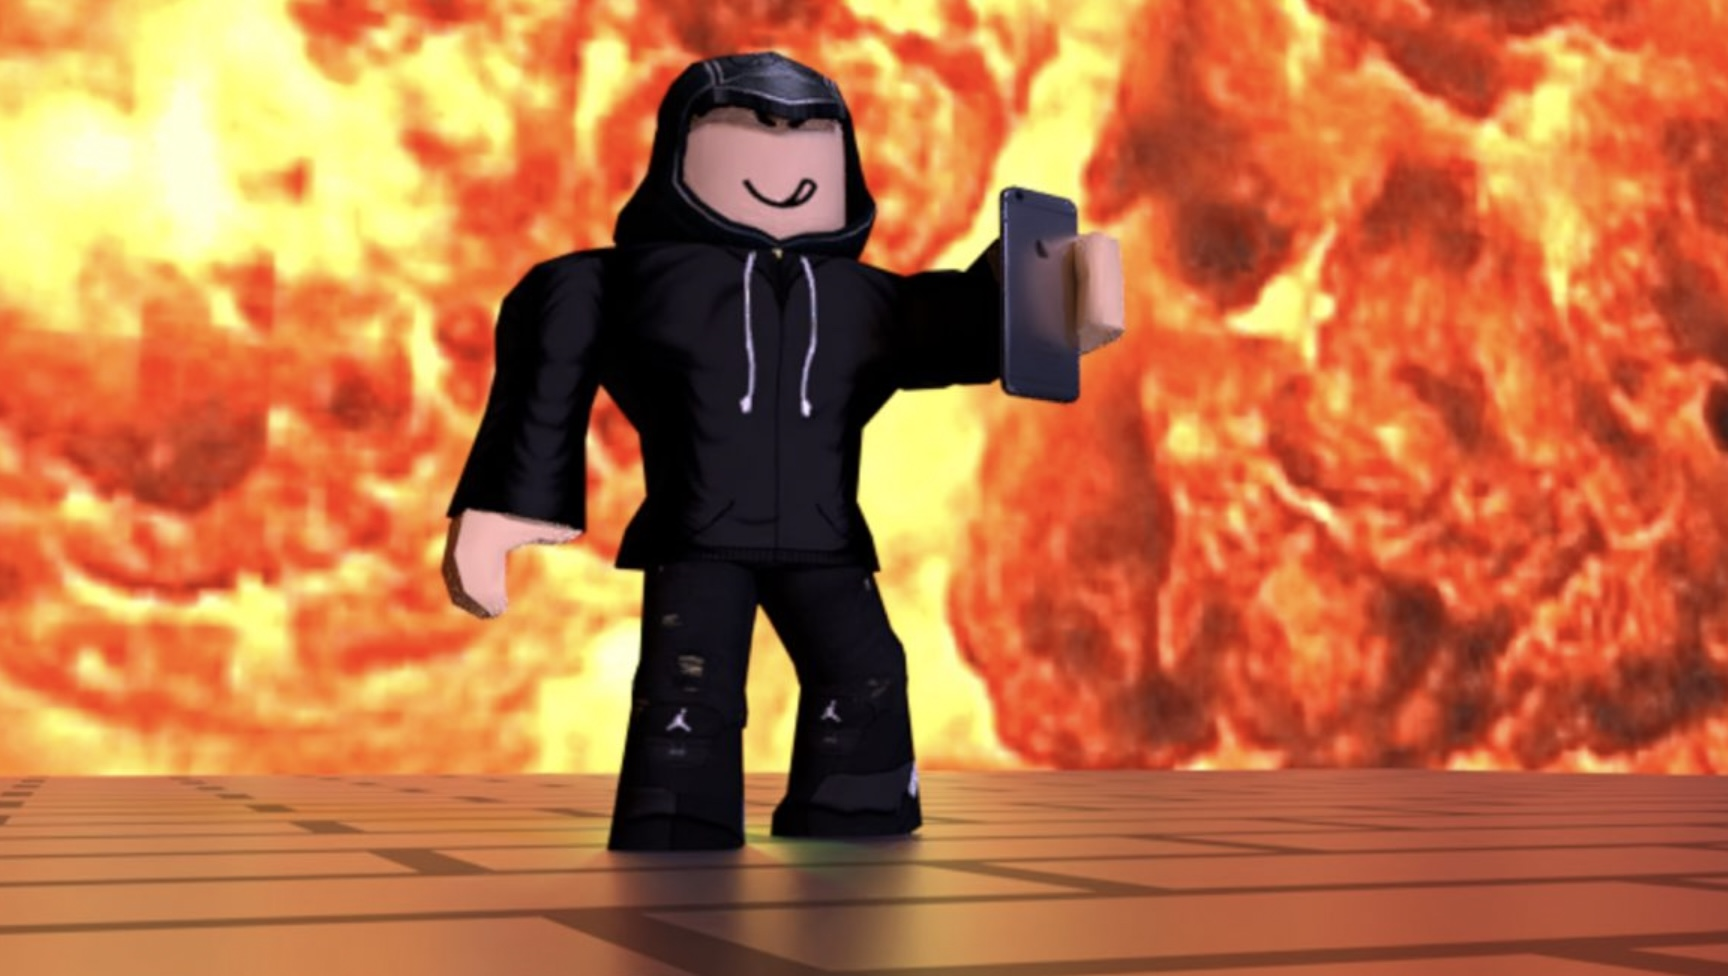 Codes For Bitcoin Miner Roblox